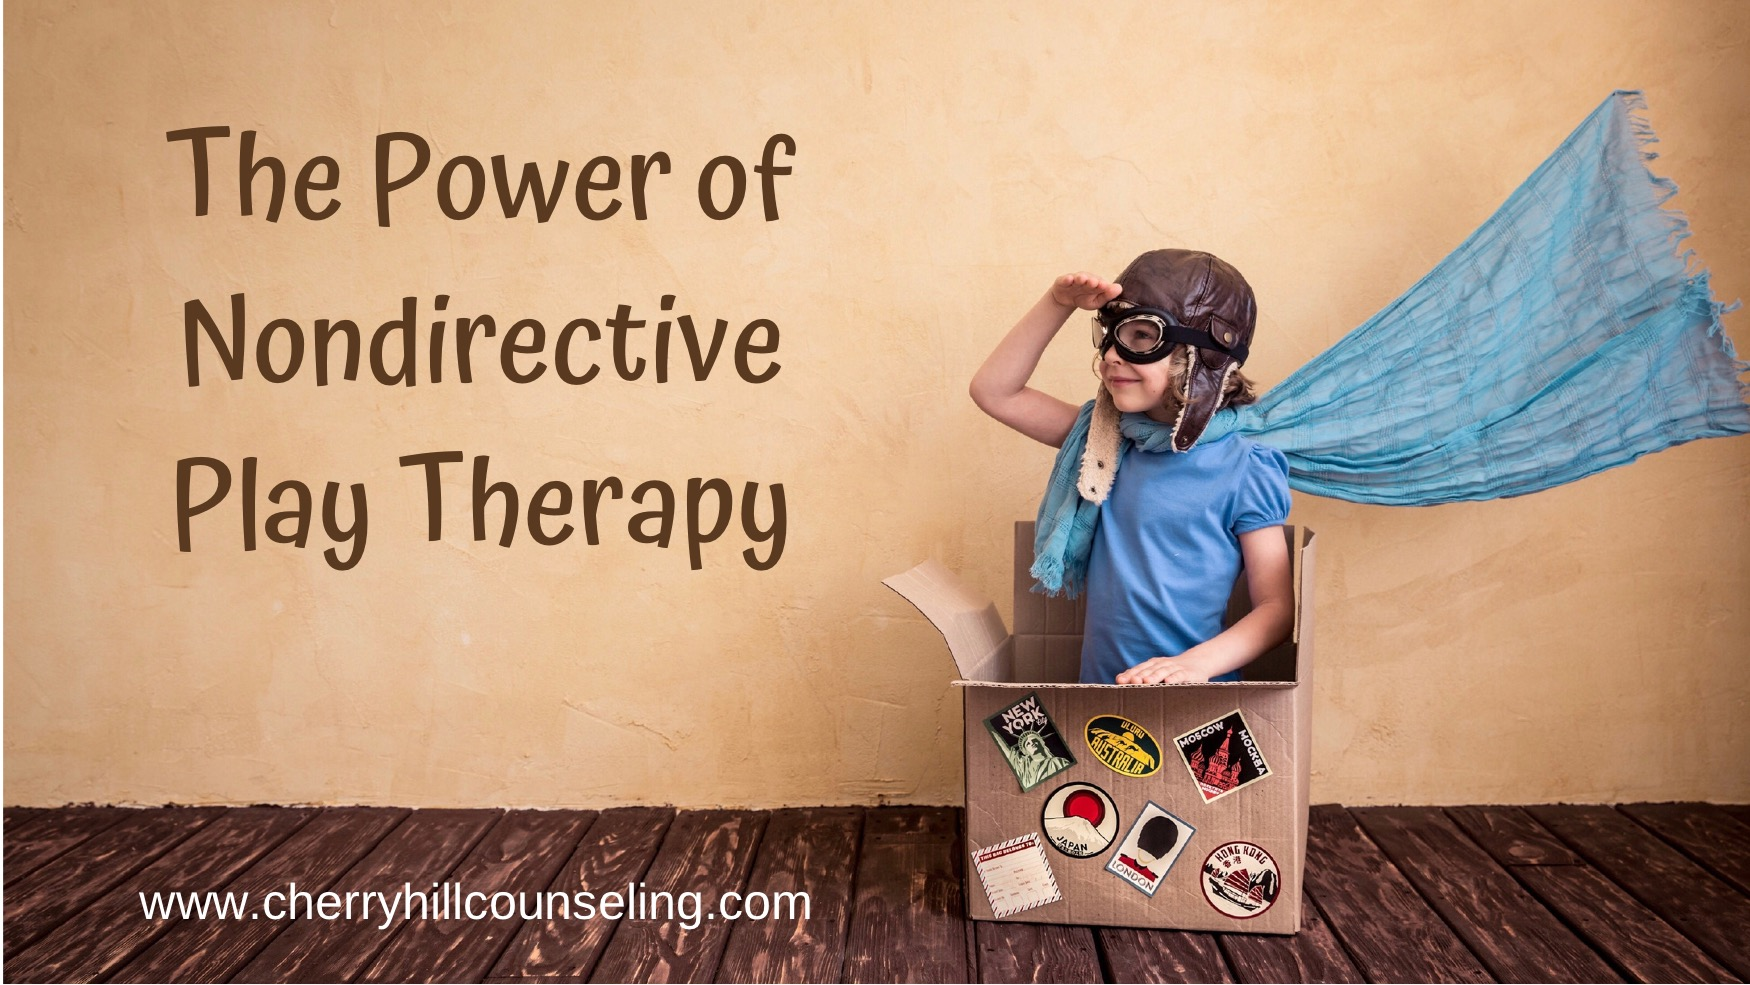 The Power of Nondirective Play Therapy